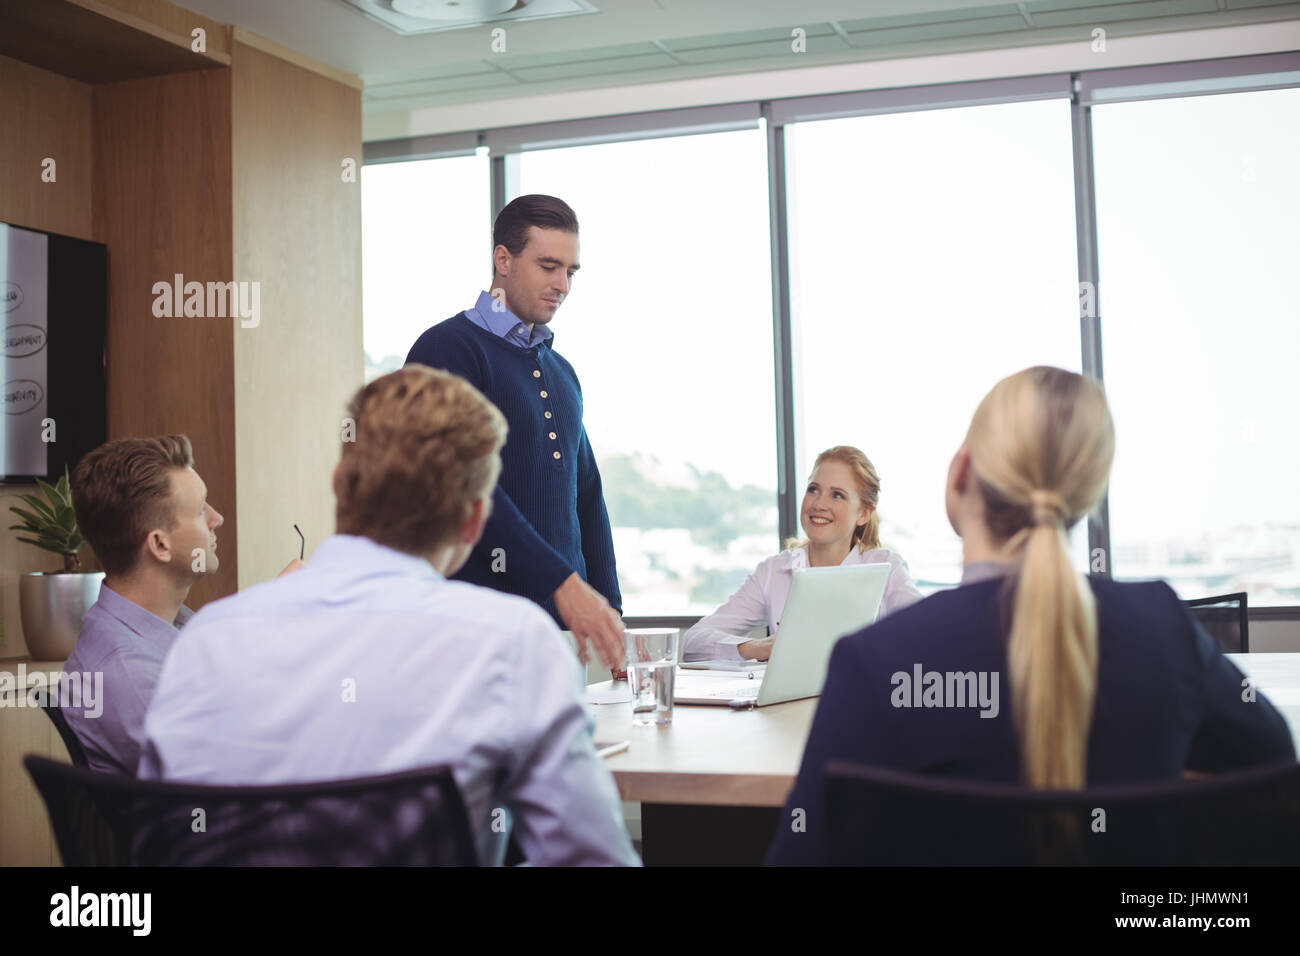 Business people discussing during meeting in board room - Stock Image